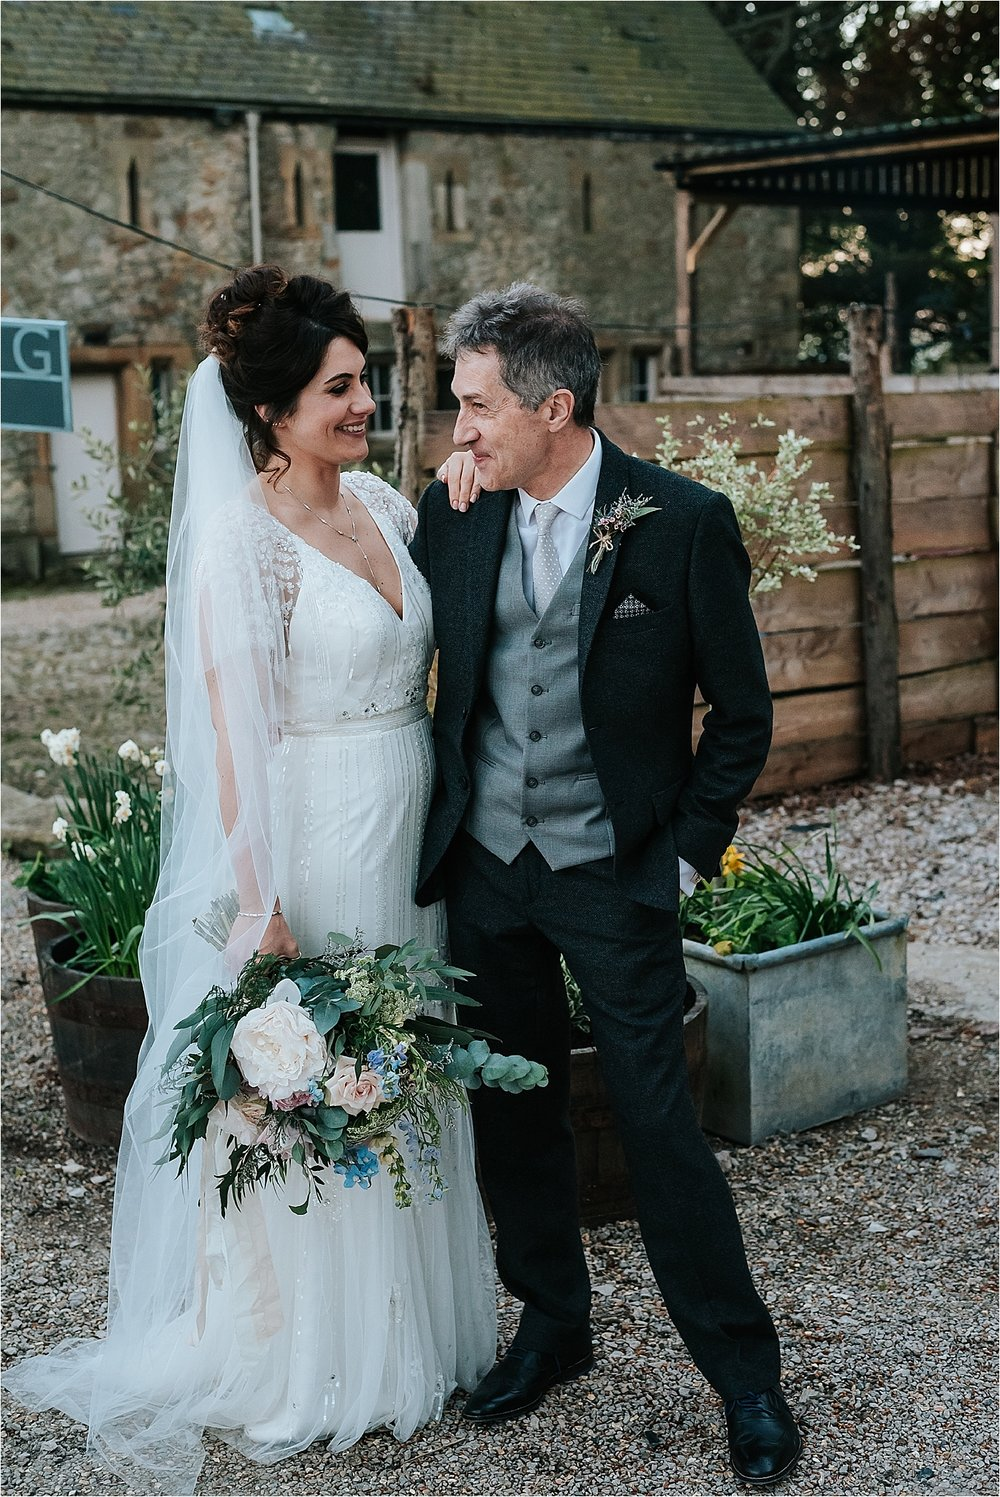 boho+wedding+photographer+wyresdale+park+lancashire_0204.jpg